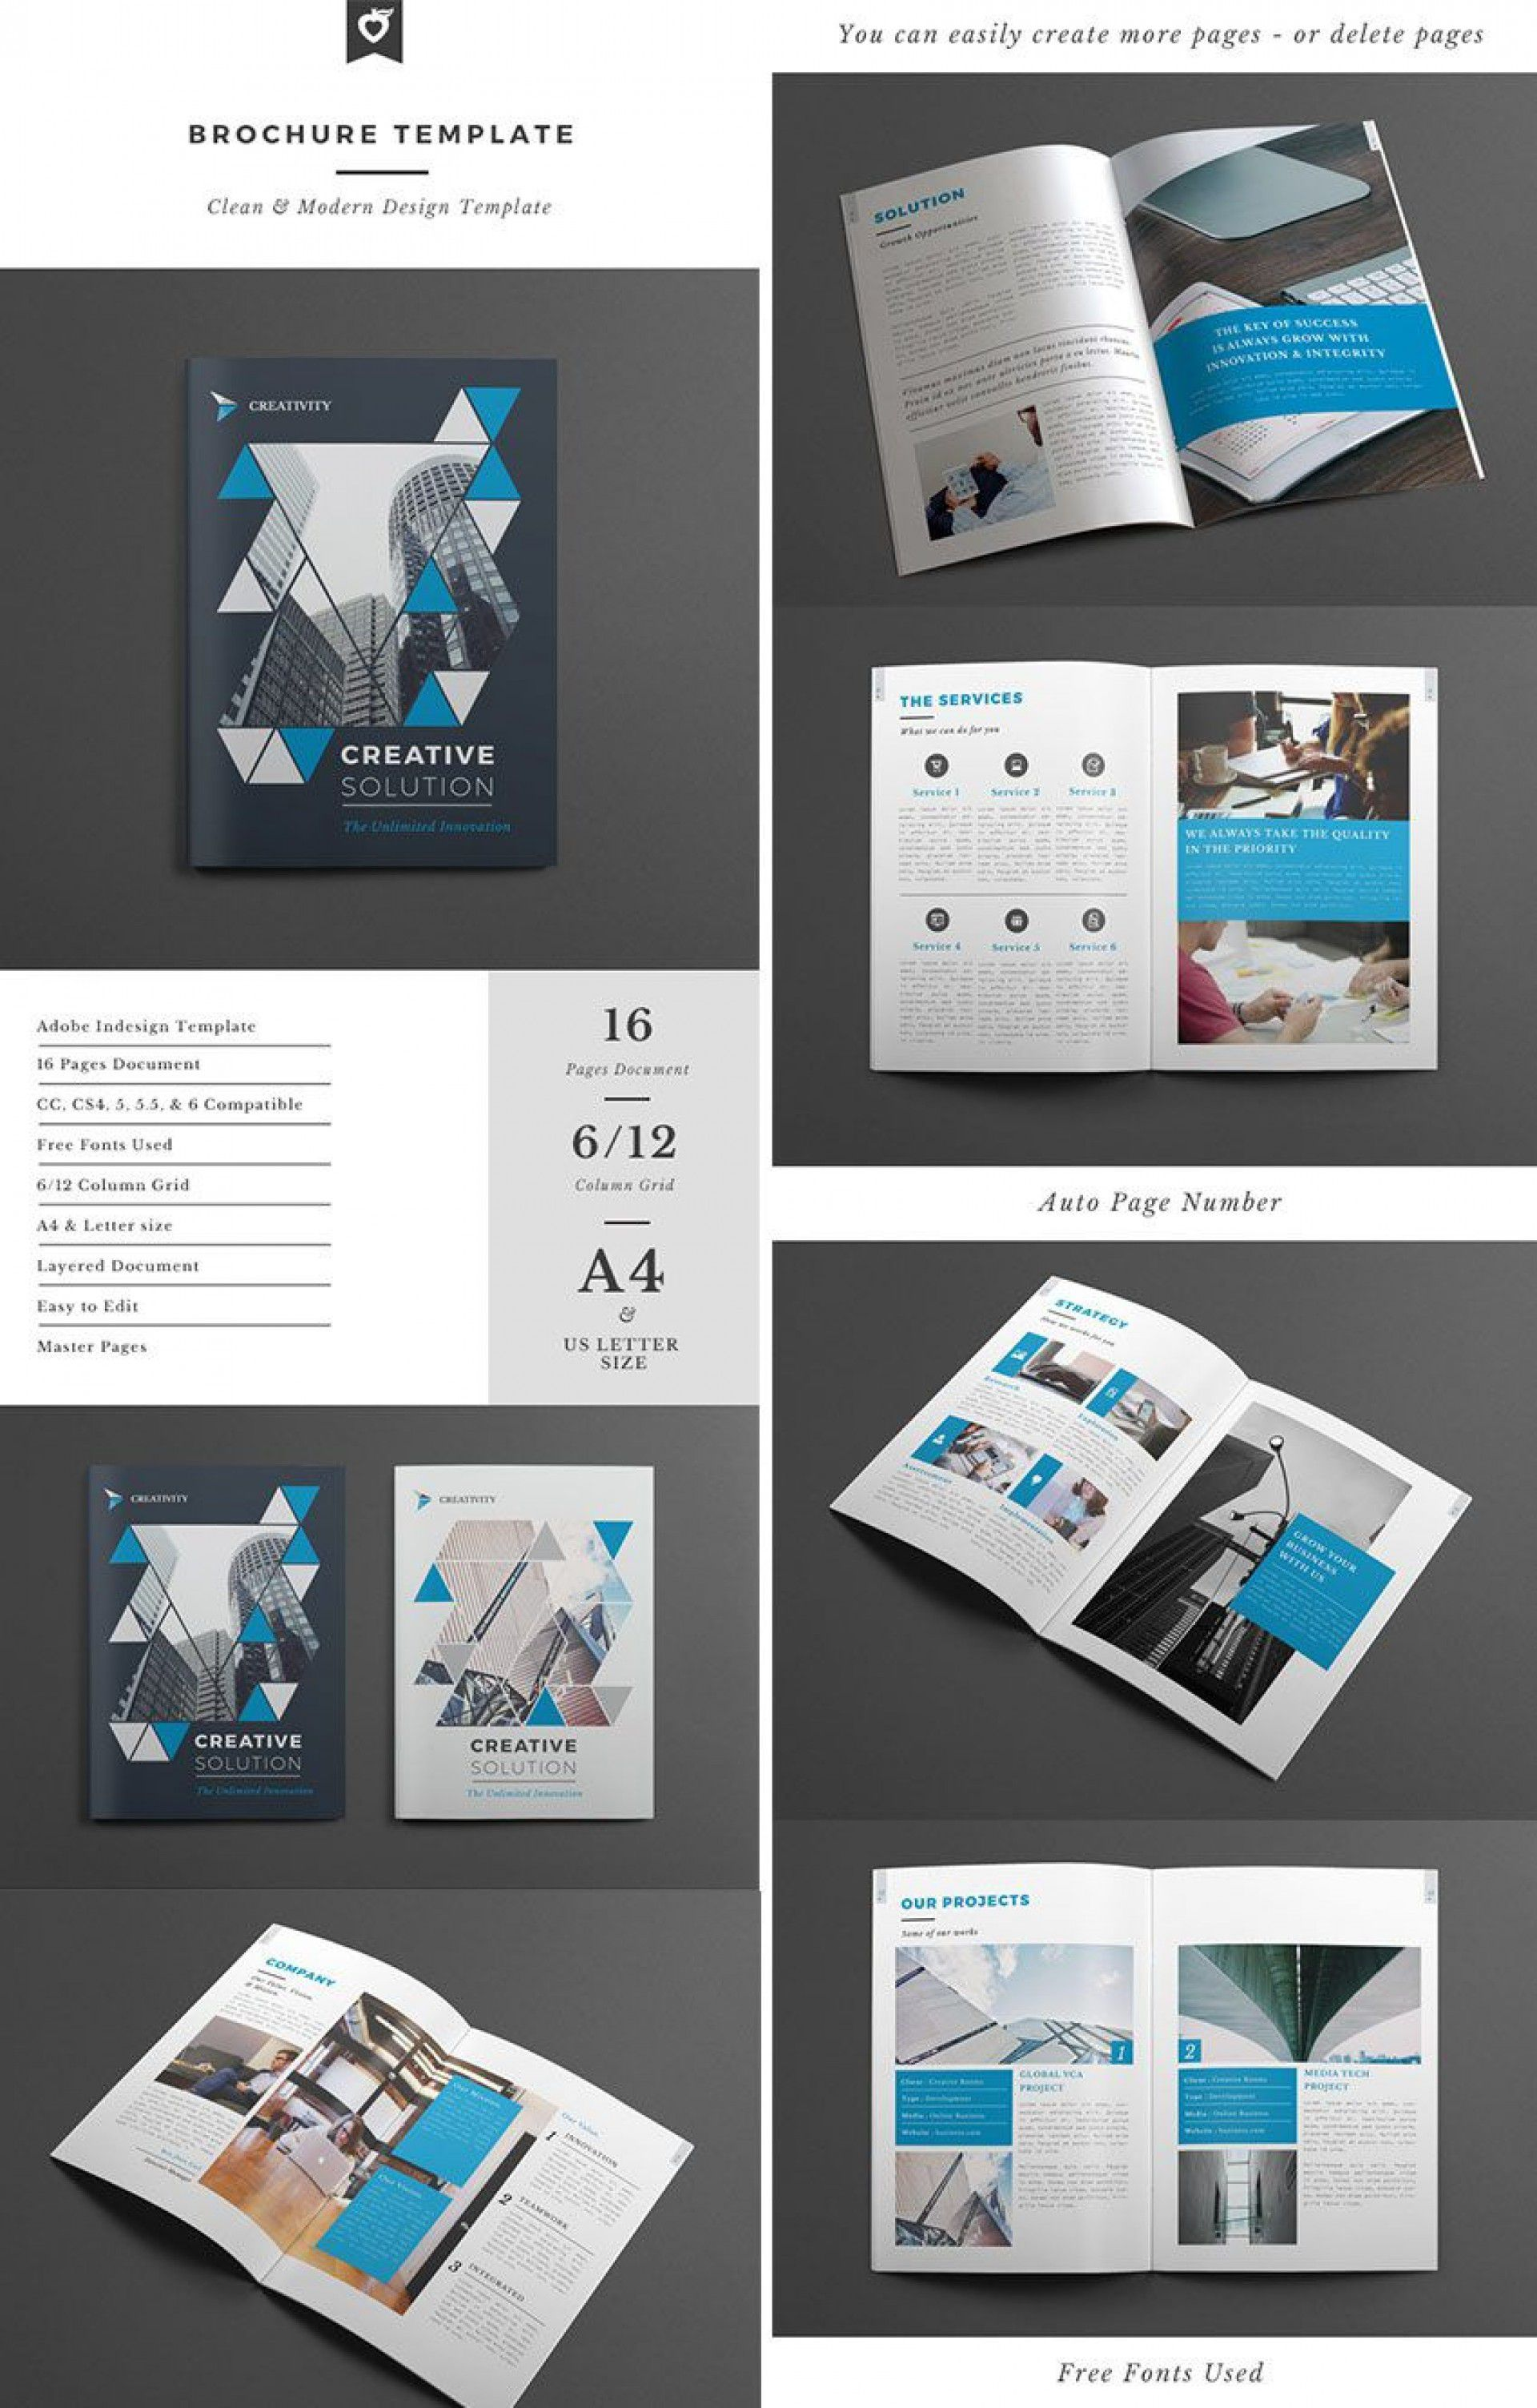 001 Fascinating Adobe Indesign Brochure Template Free Download Highest Clarity Full